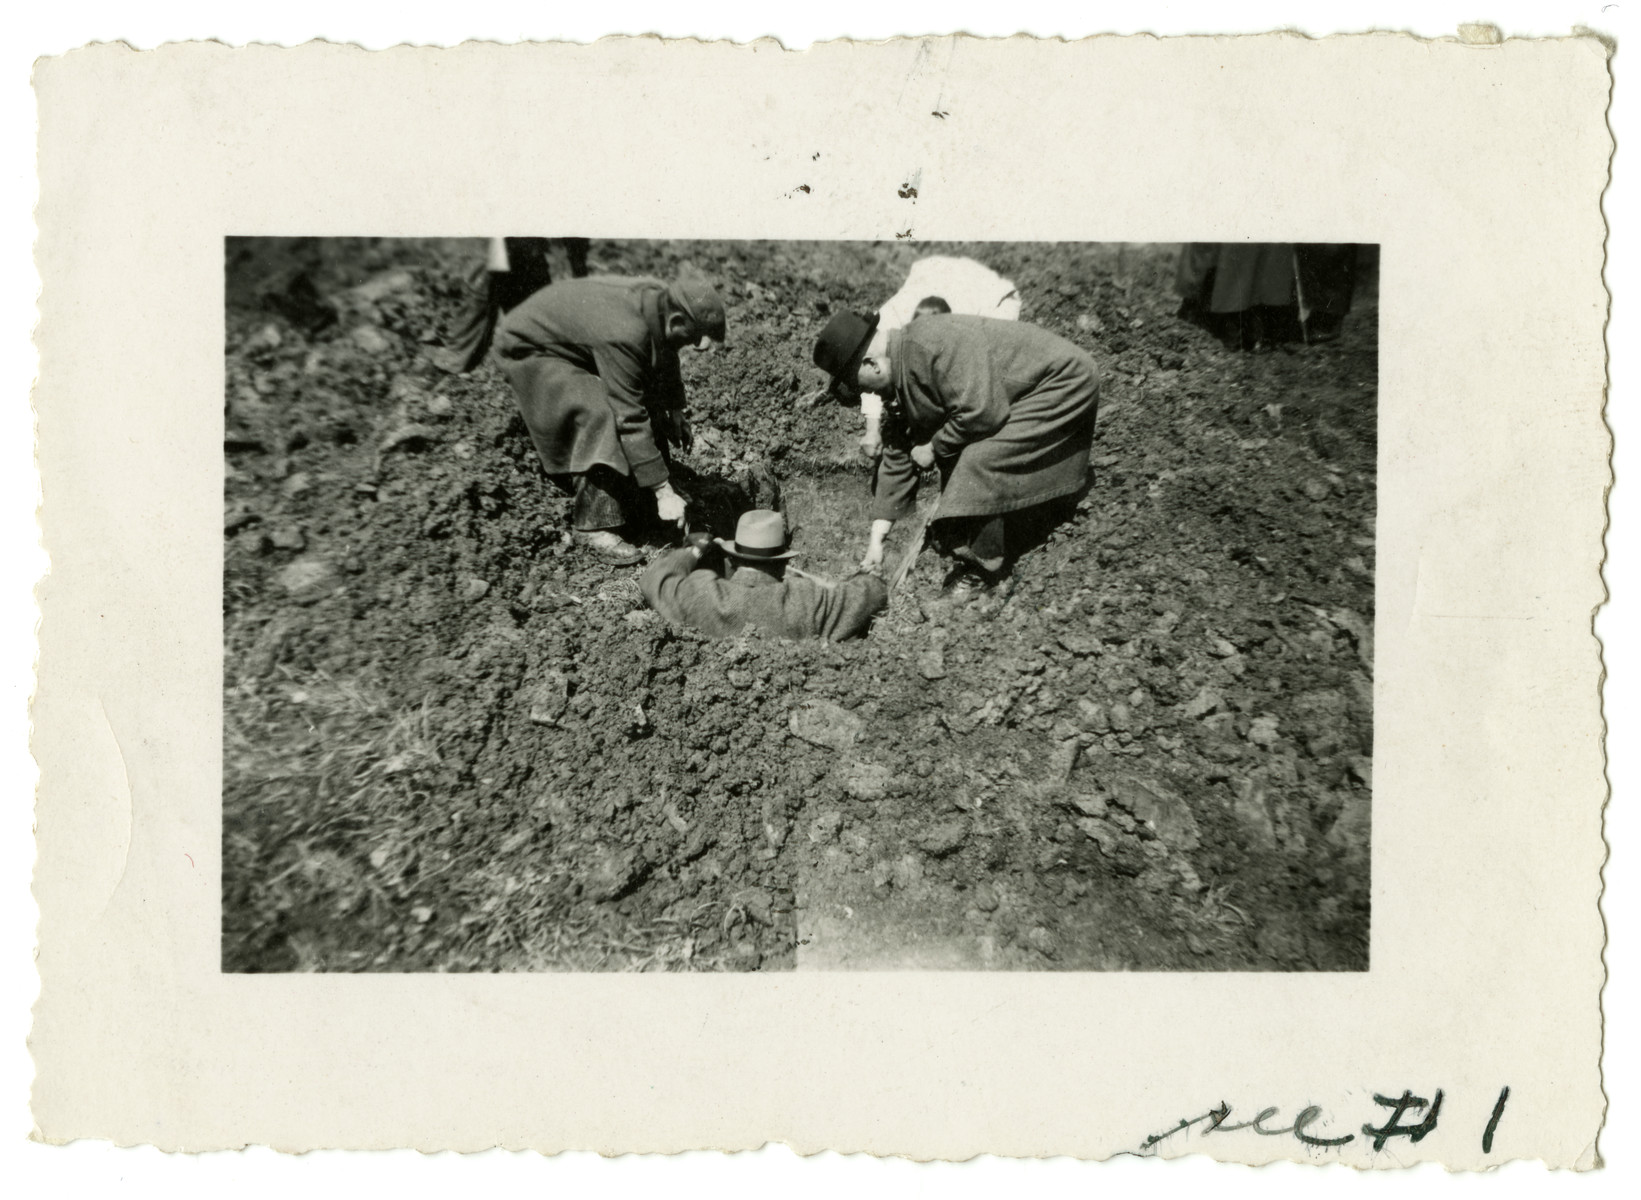 Three German civilians prepare to lift a body out of a grave for later reburial.